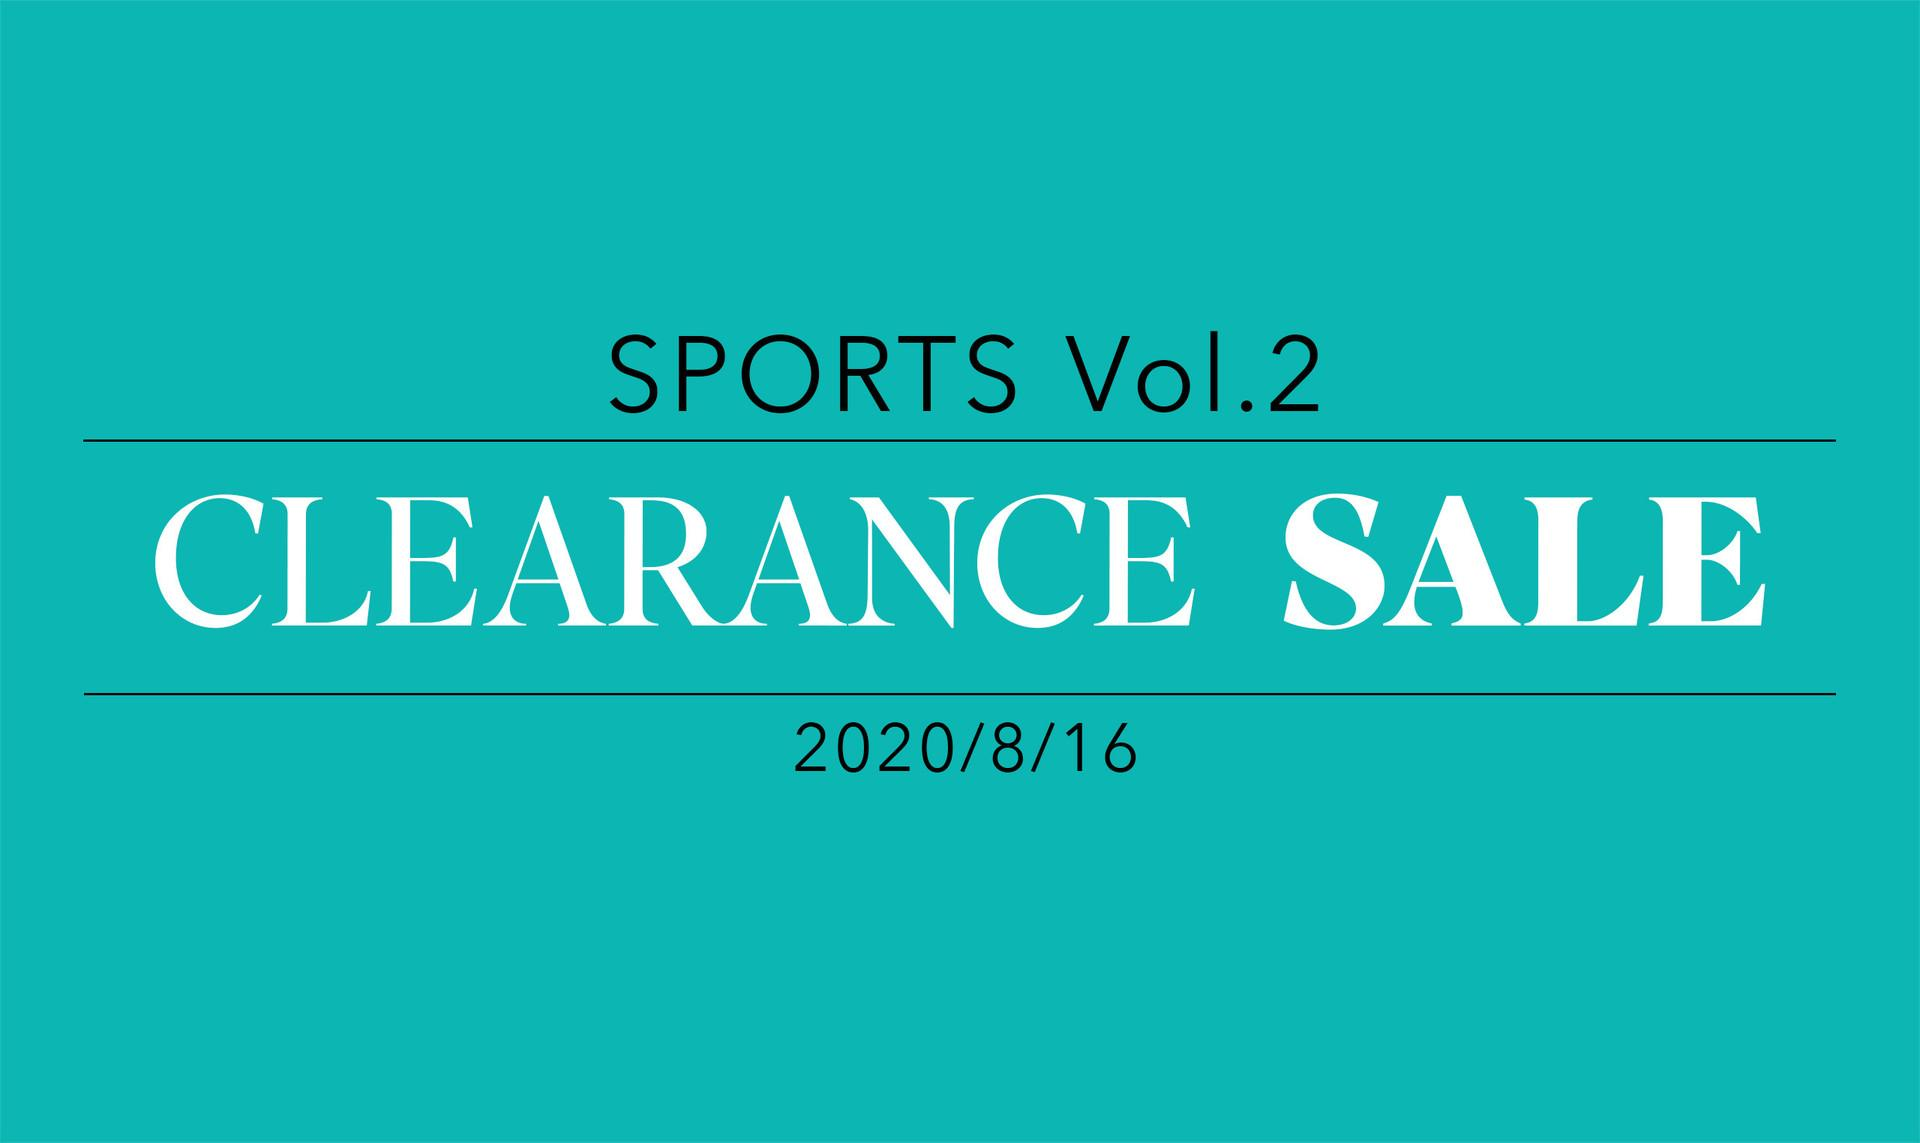 Clearance sale : Sports vol.2